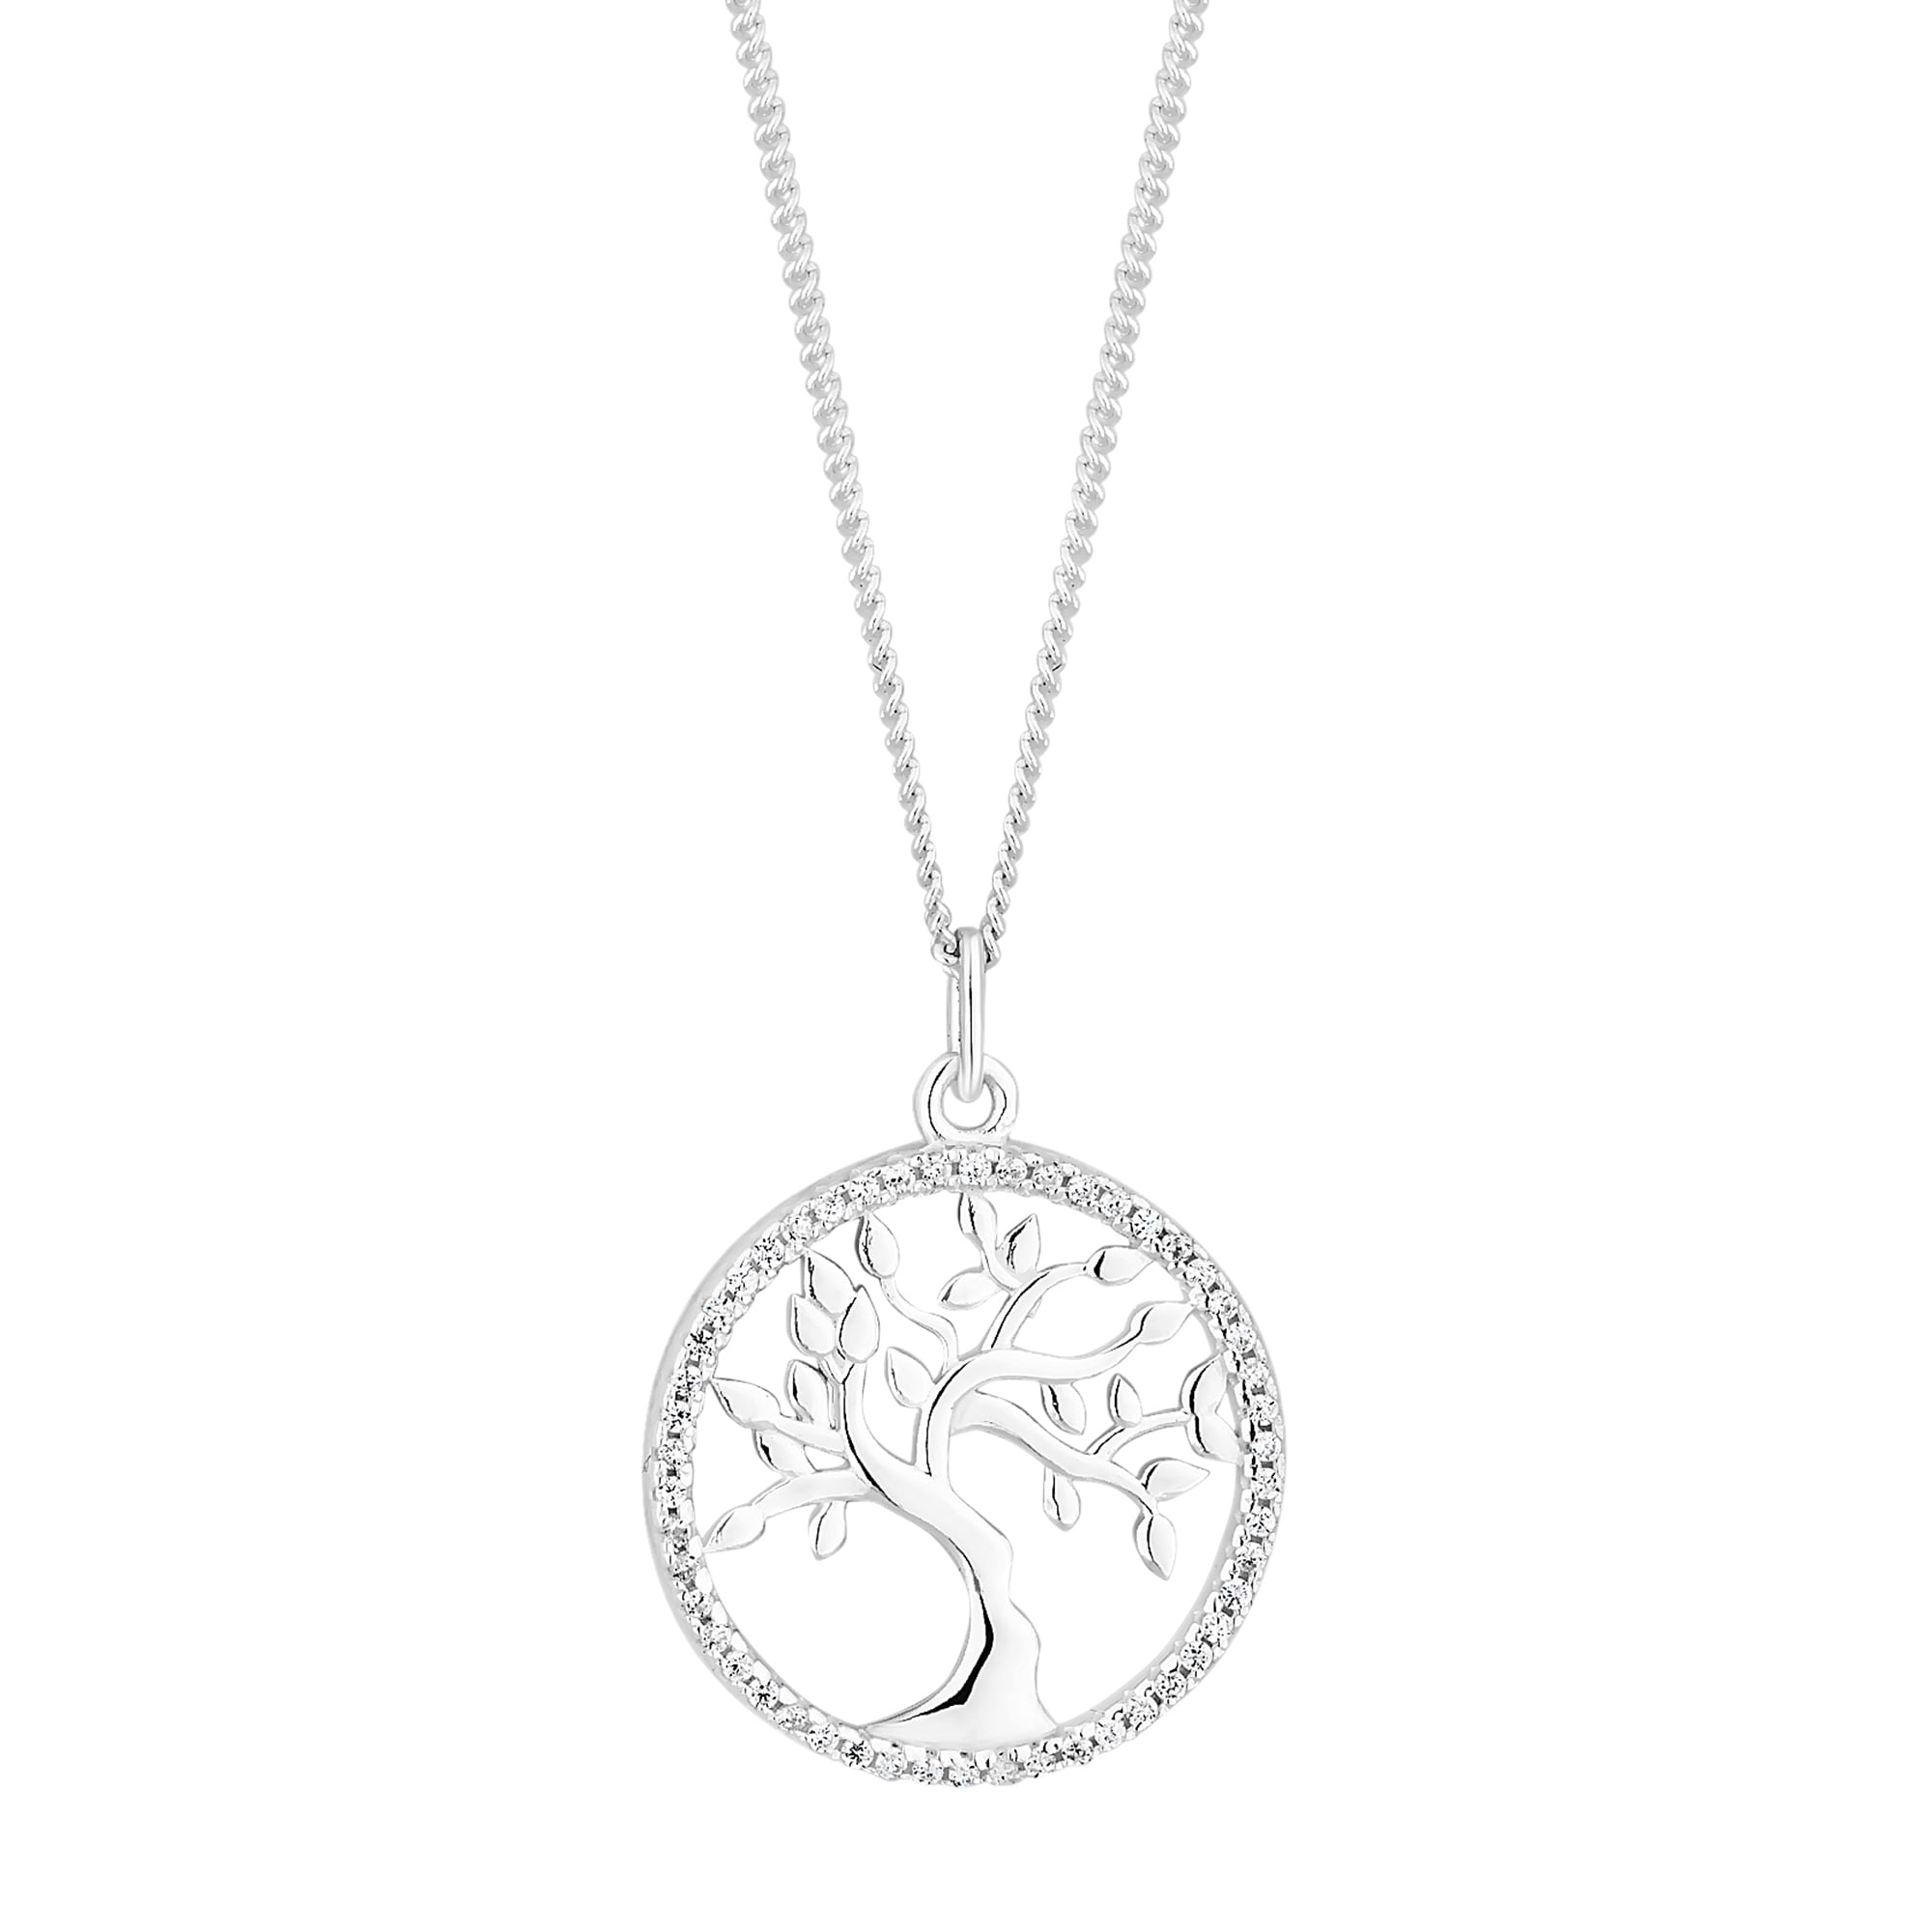 necklace bling silver tree pfs pendant inspirational of jewelry life sterling par